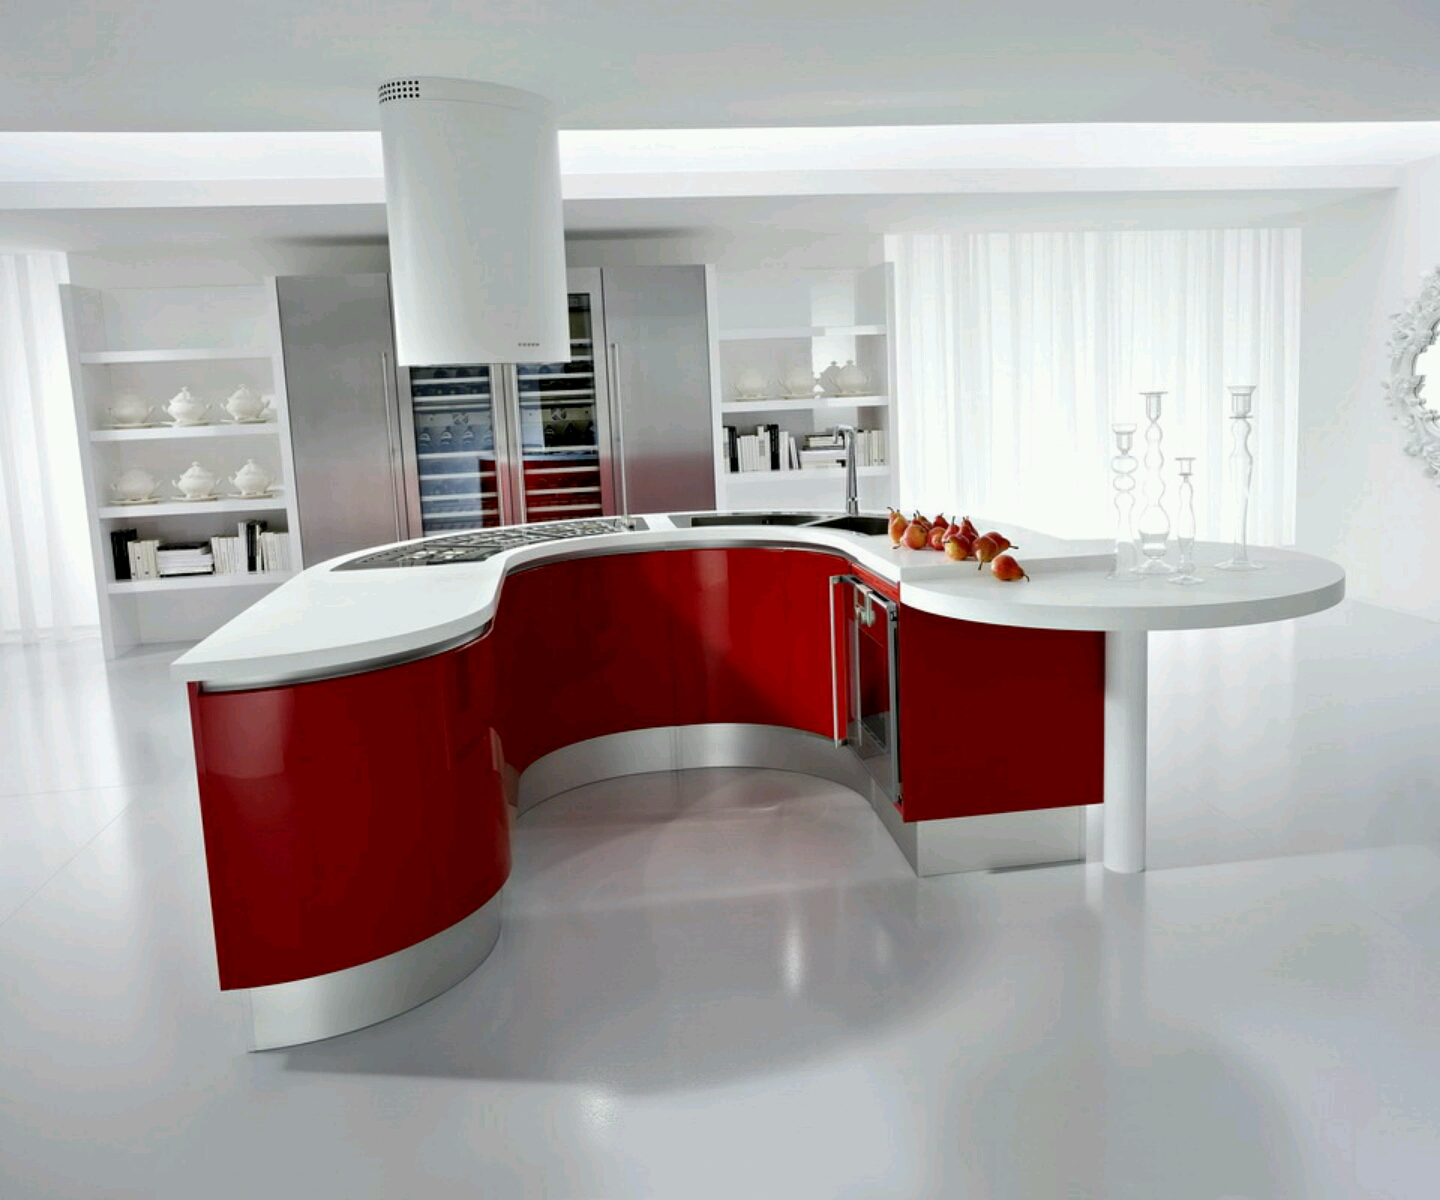 Modern kitchen cabinets designs ideas furniture gallery for Modern kitchen gallery